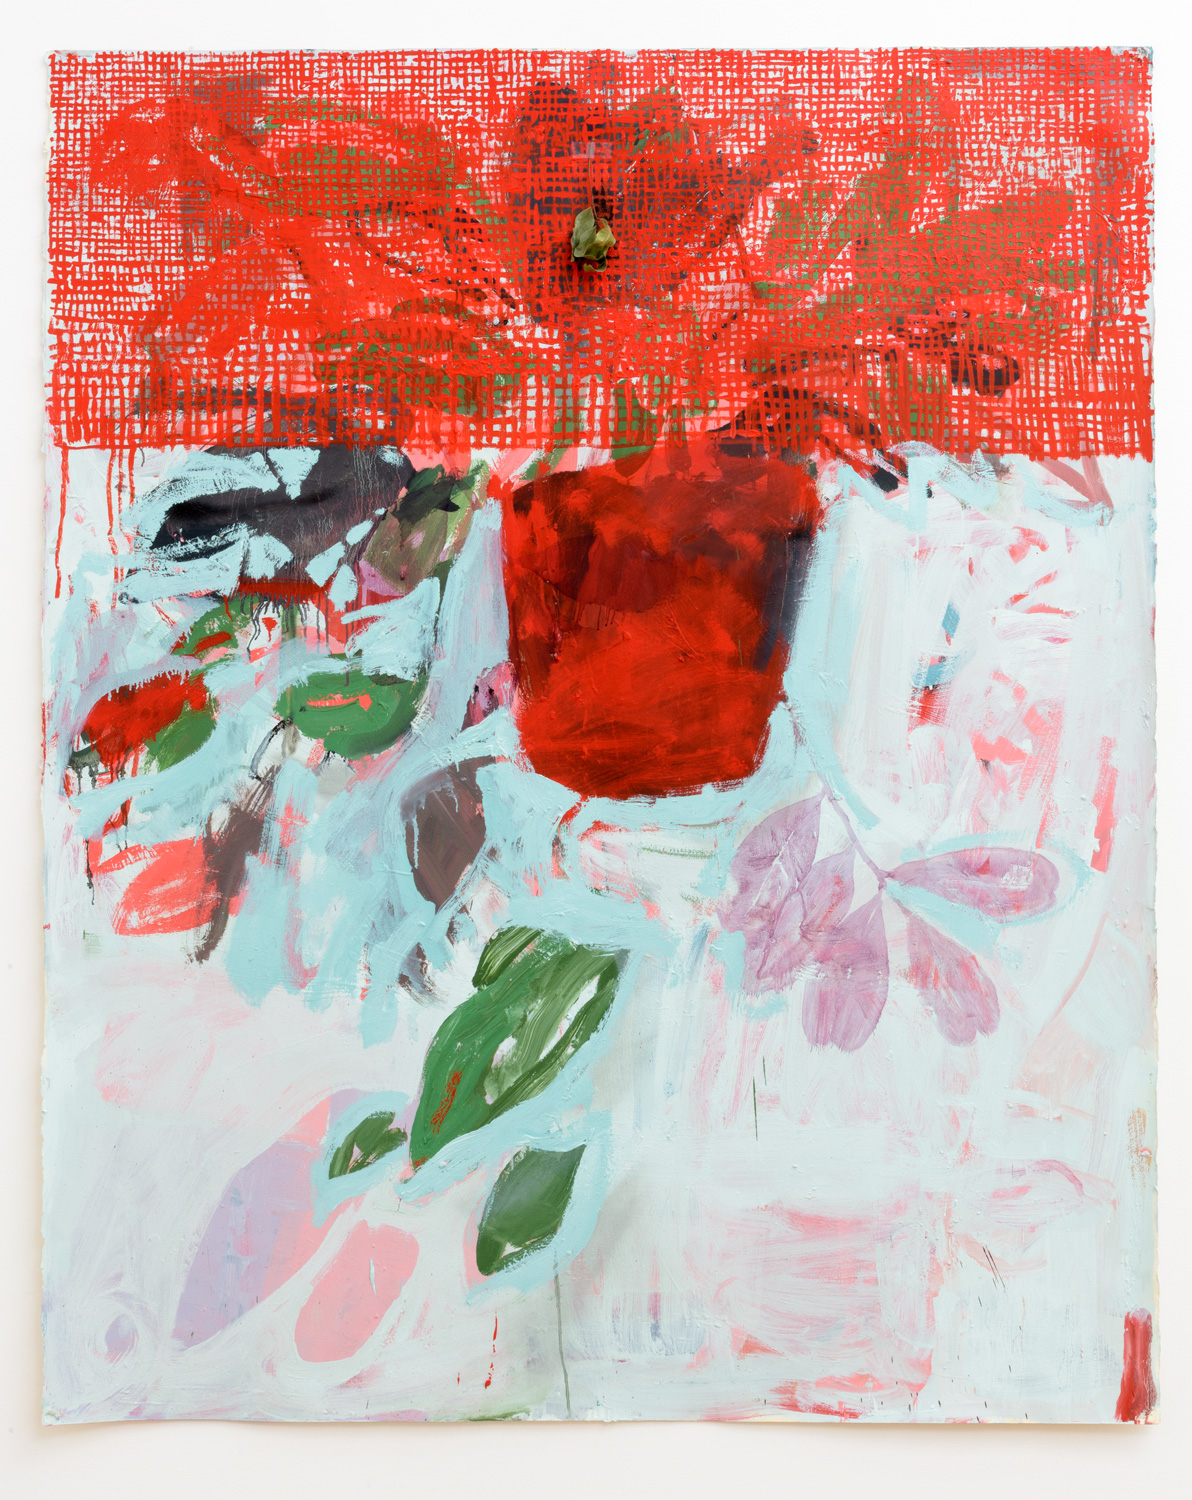 Frank J. Stockton  Untitled,  2016 Oil on paper with leaf, 52.5 x 65 x 2.5in.